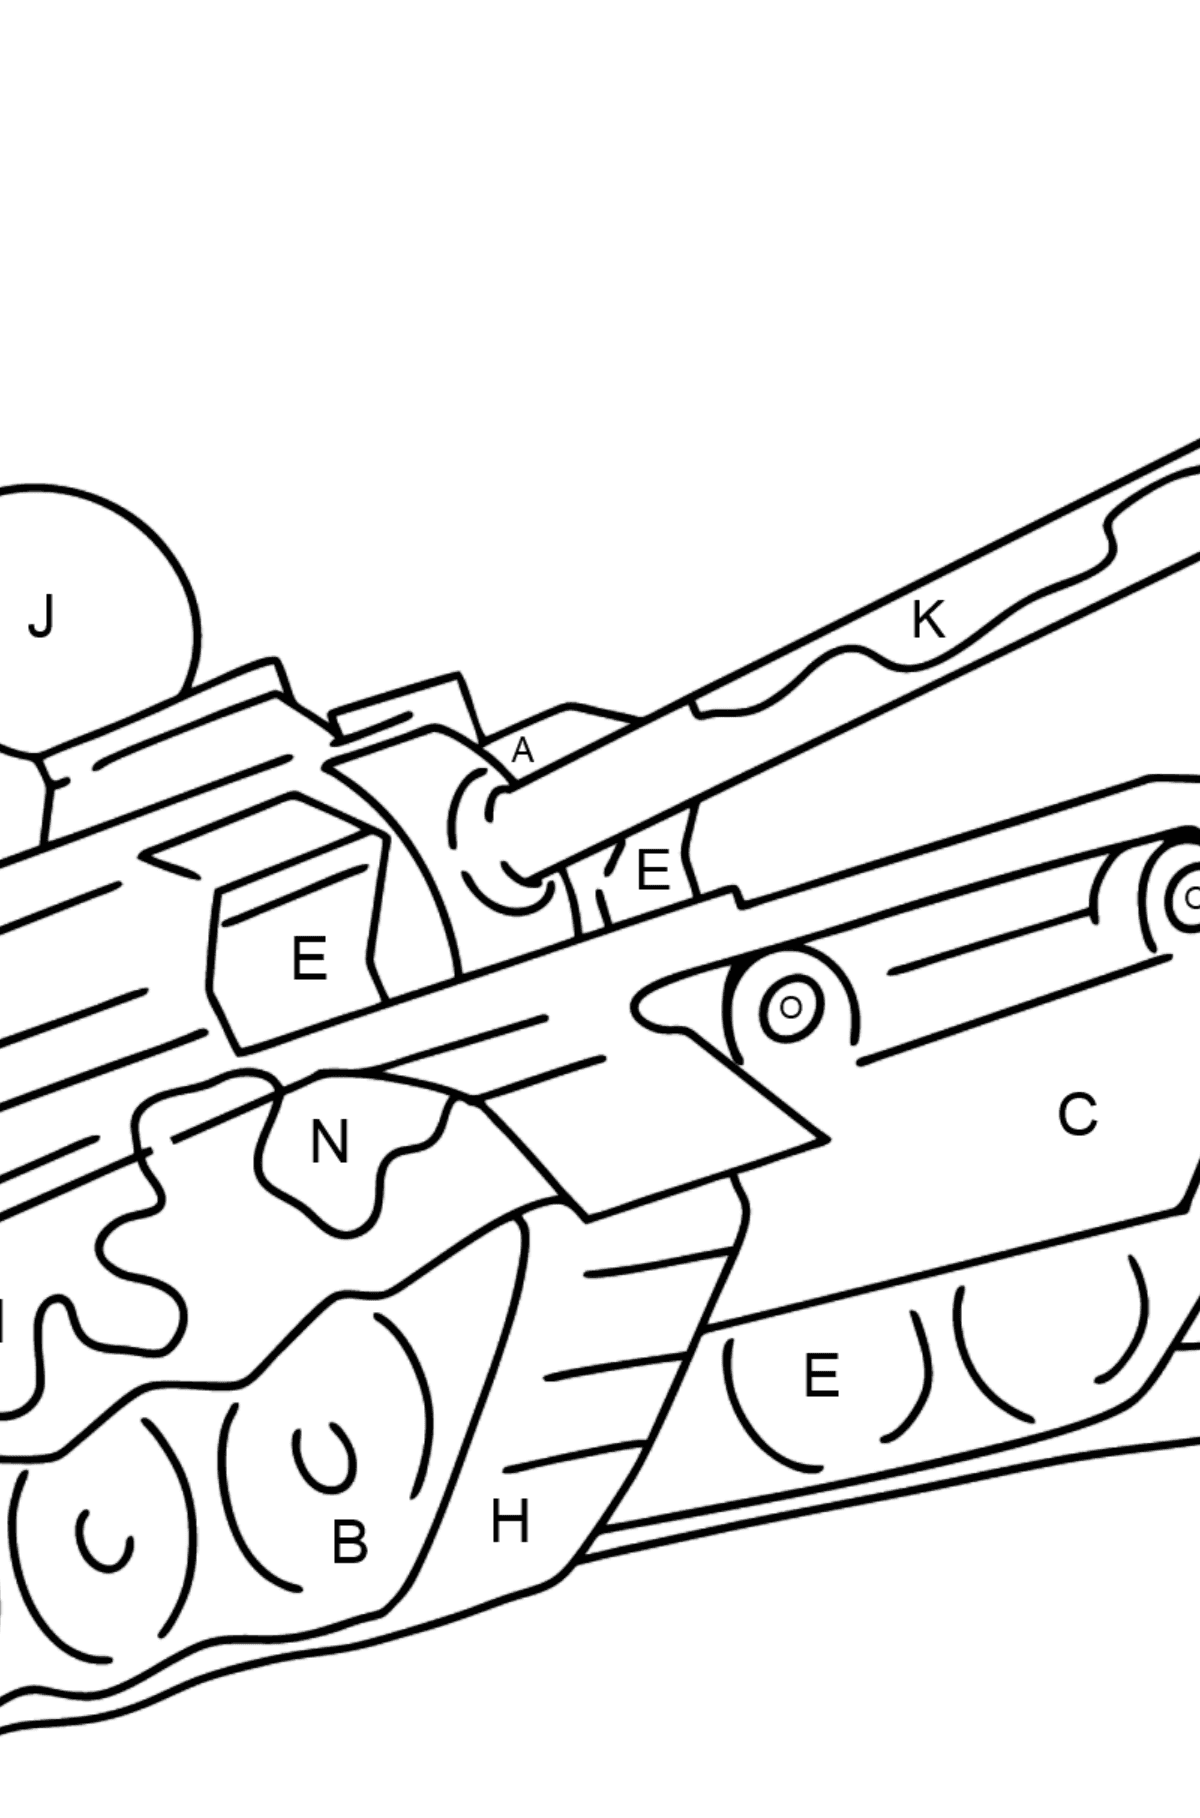 Military Tank coloring page - Coloring by Letters for Kids